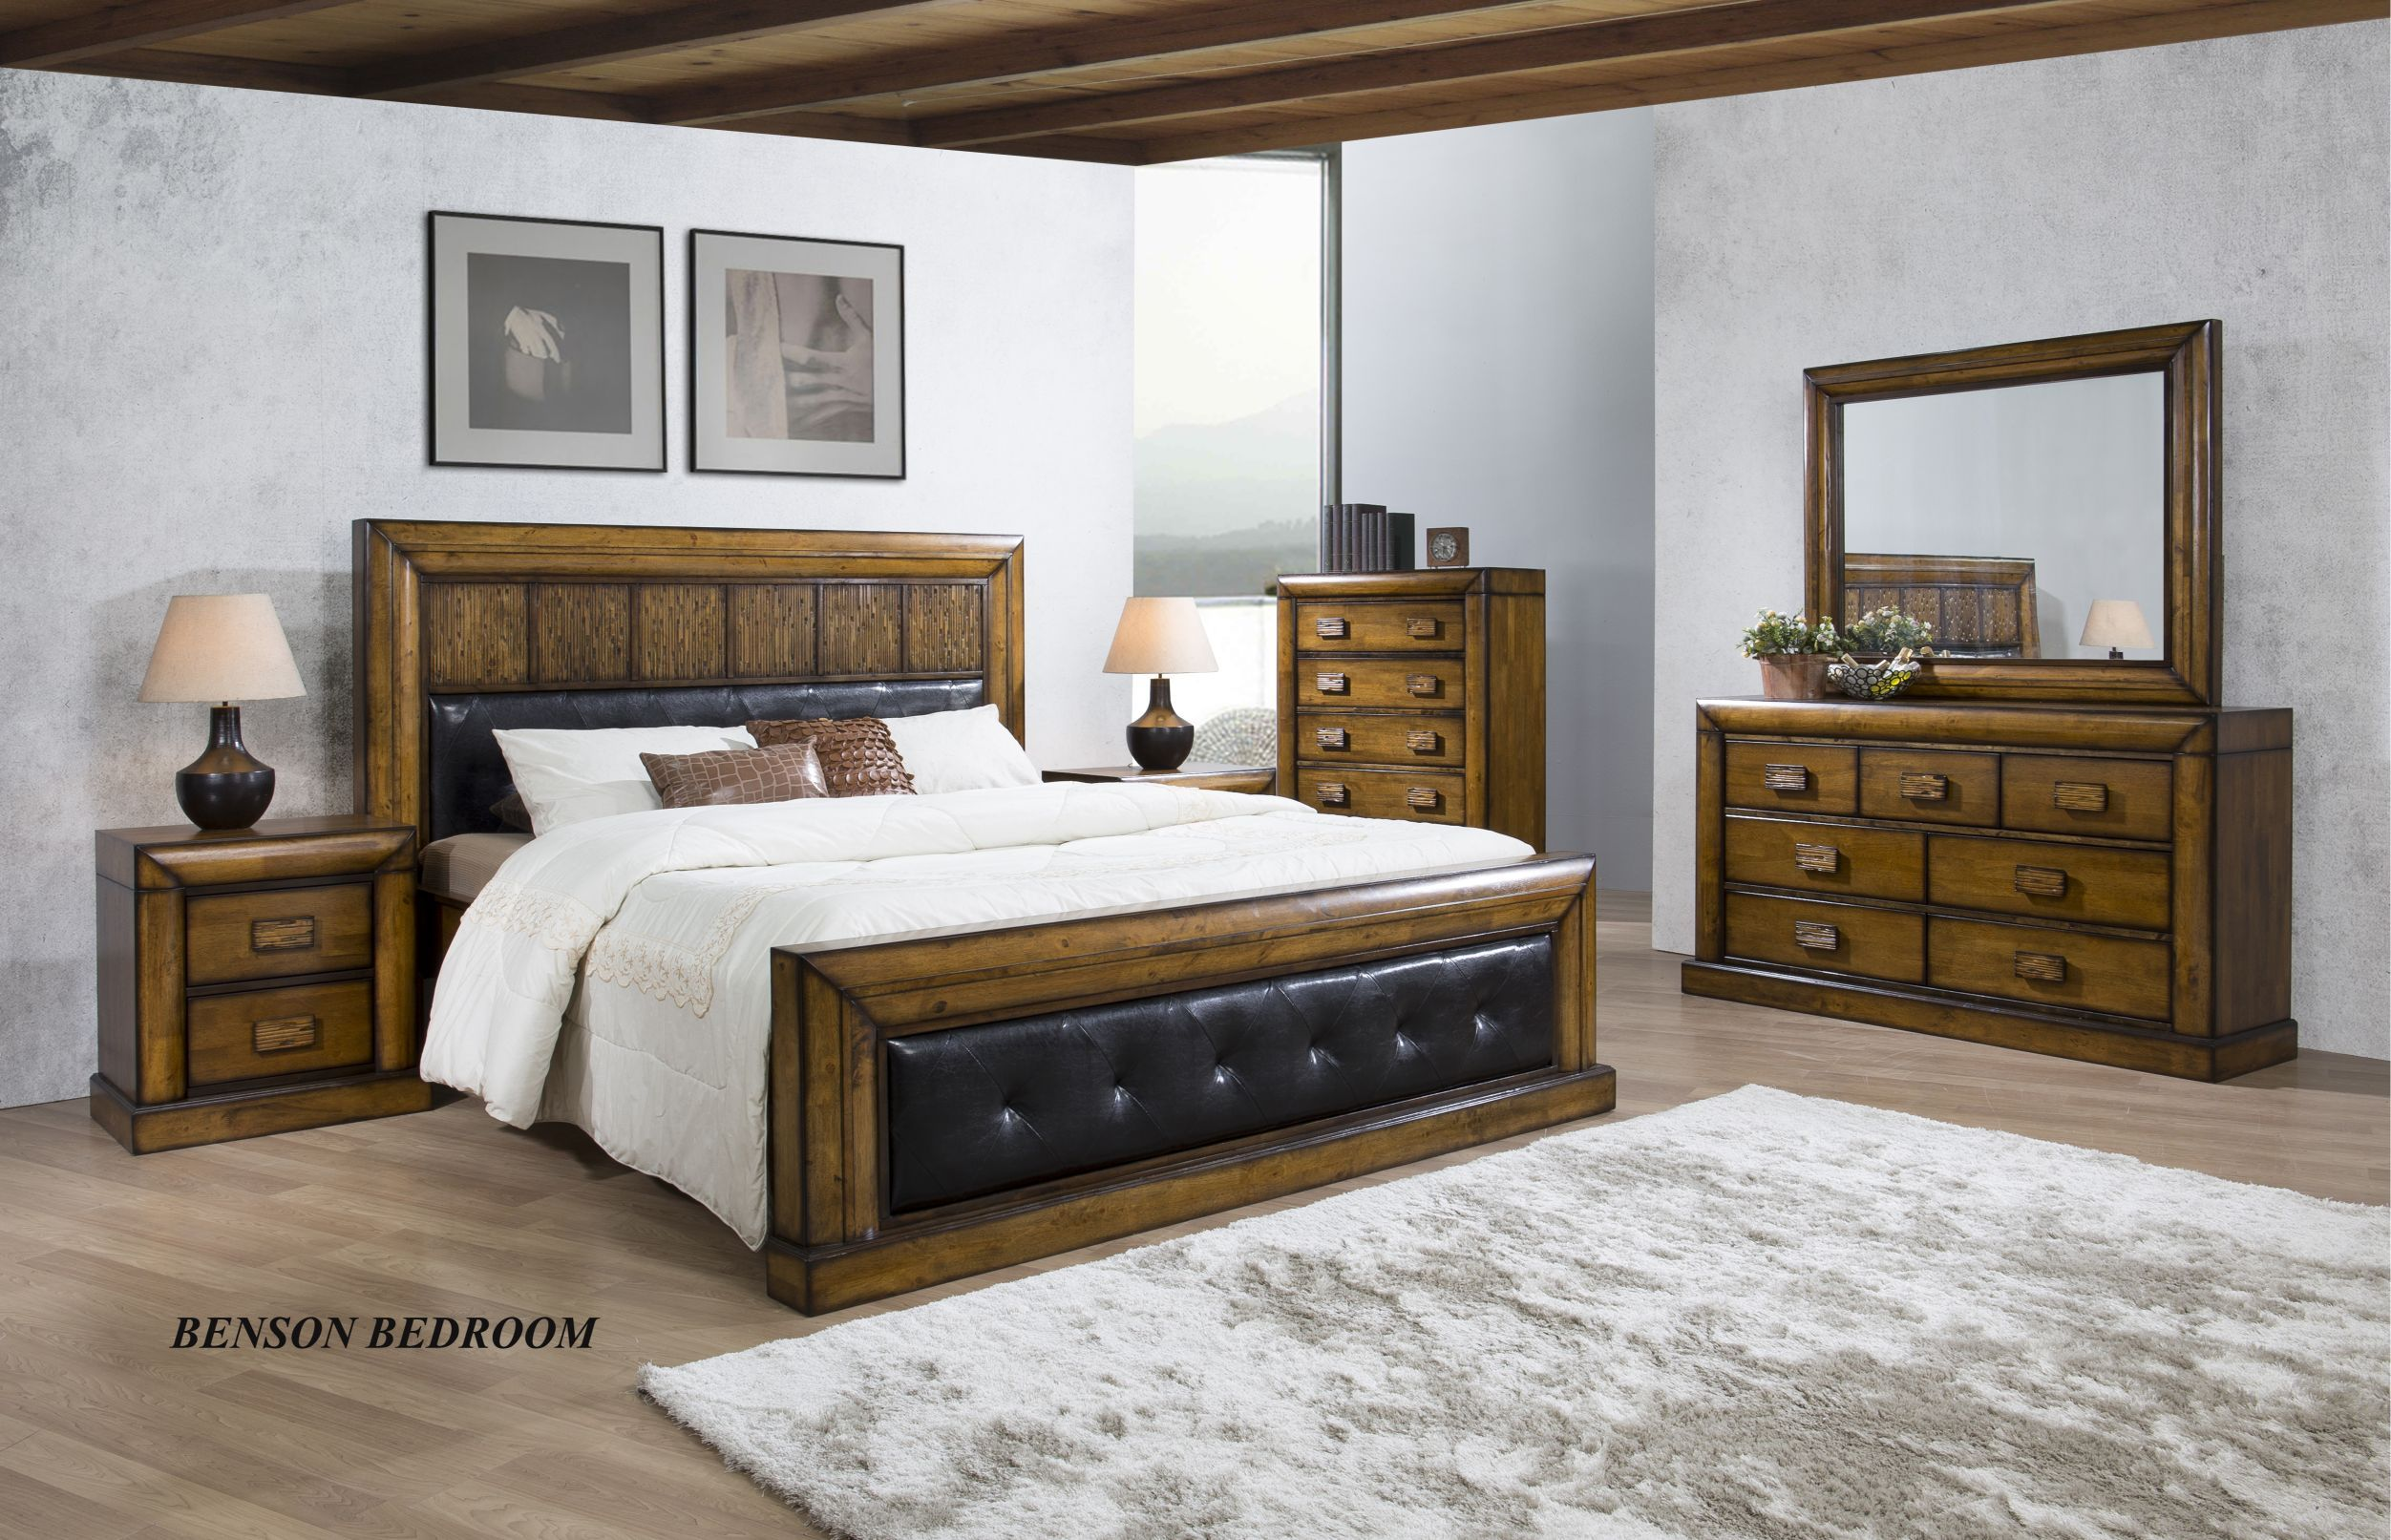 BENSON BEDROOM